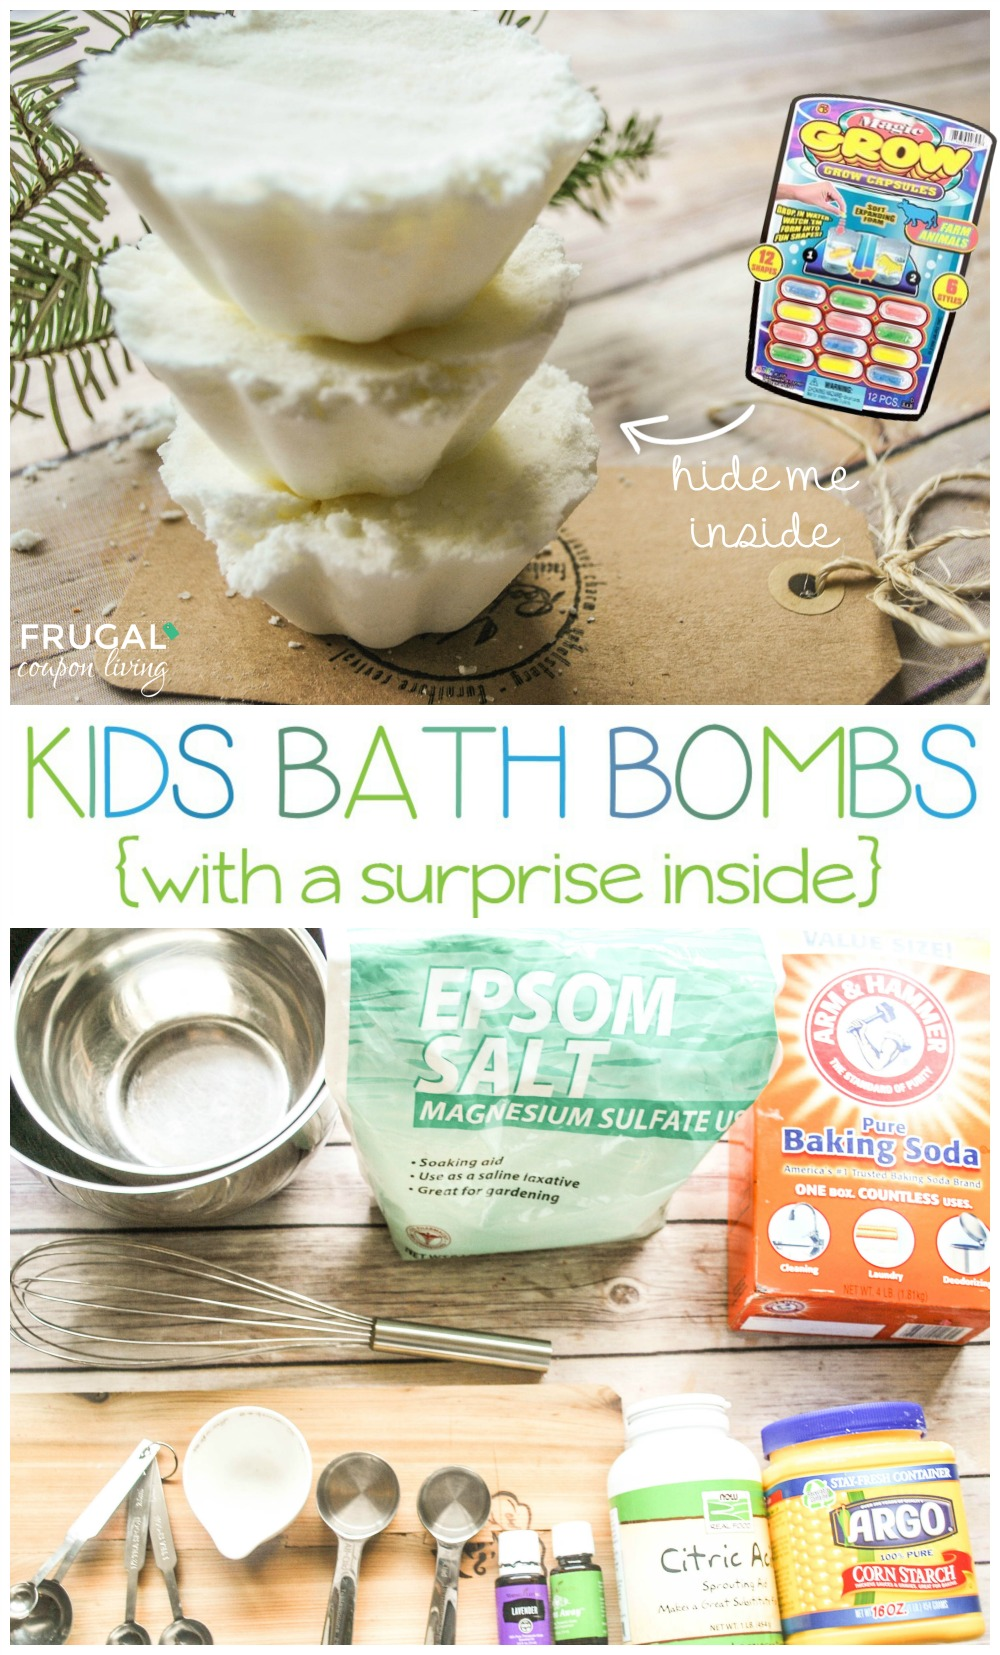 Bath bombs for kids by Frugal coupon living